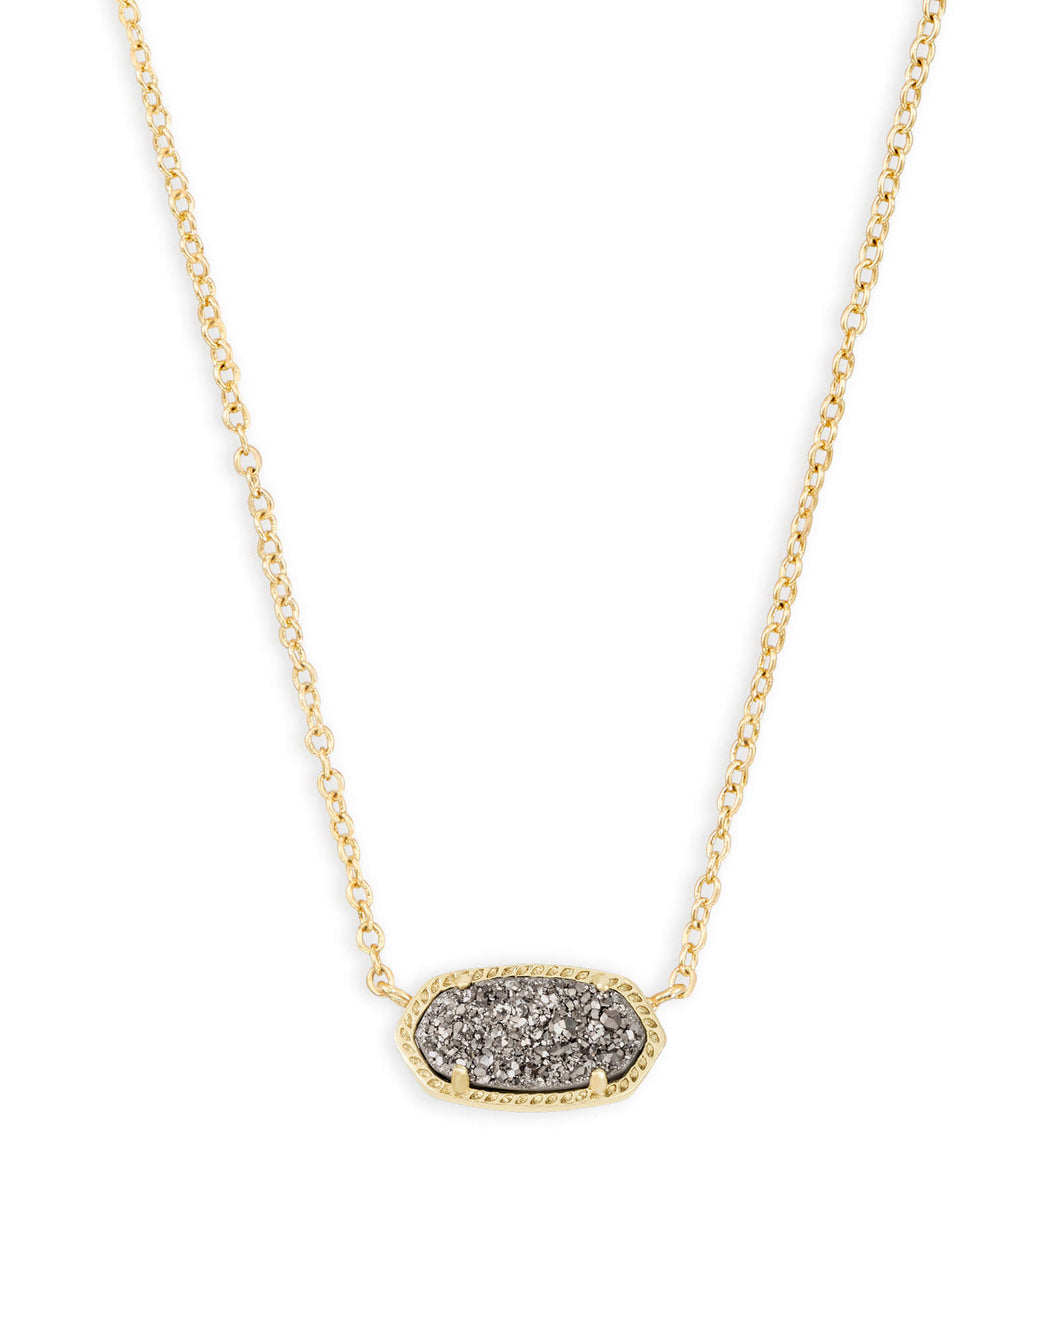 Elisa Gold Pendant Necklace in Drusy